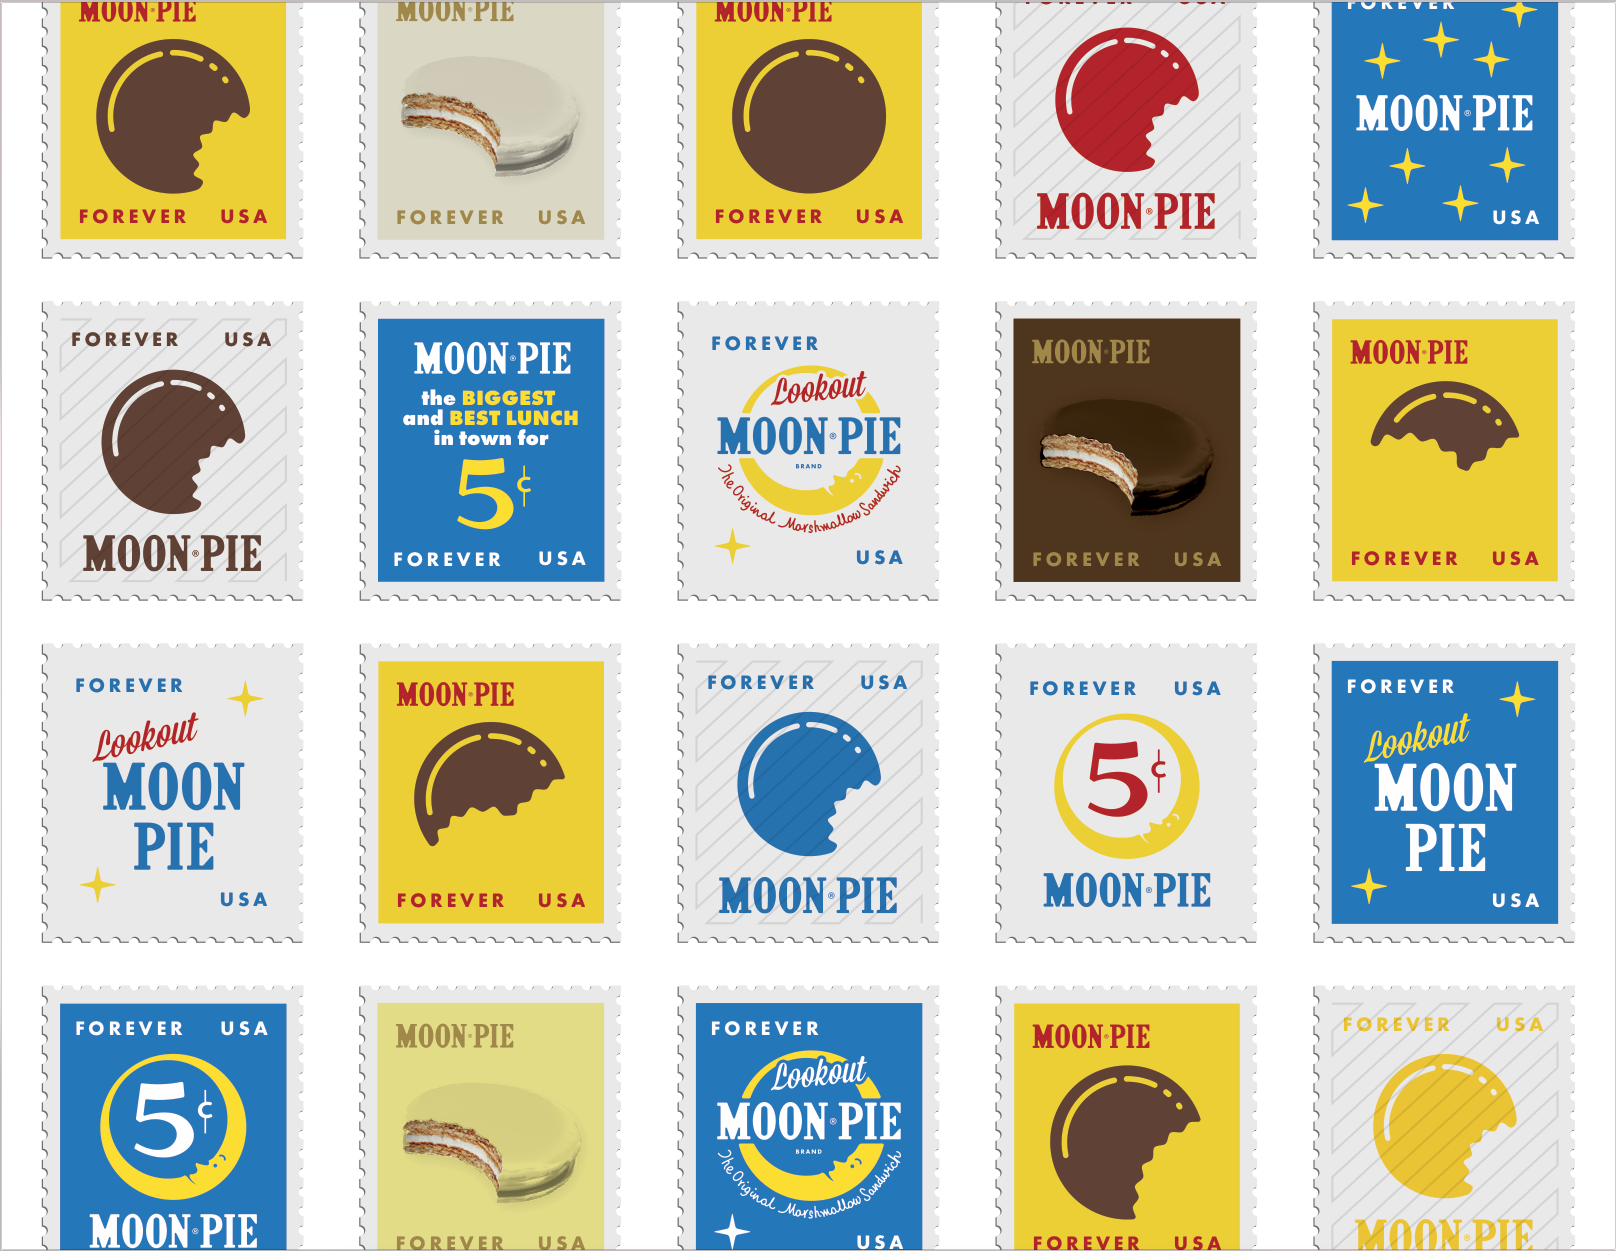 MoonPie stamp Screen Shot 2017-11-14 at 1.31.13 PM.png